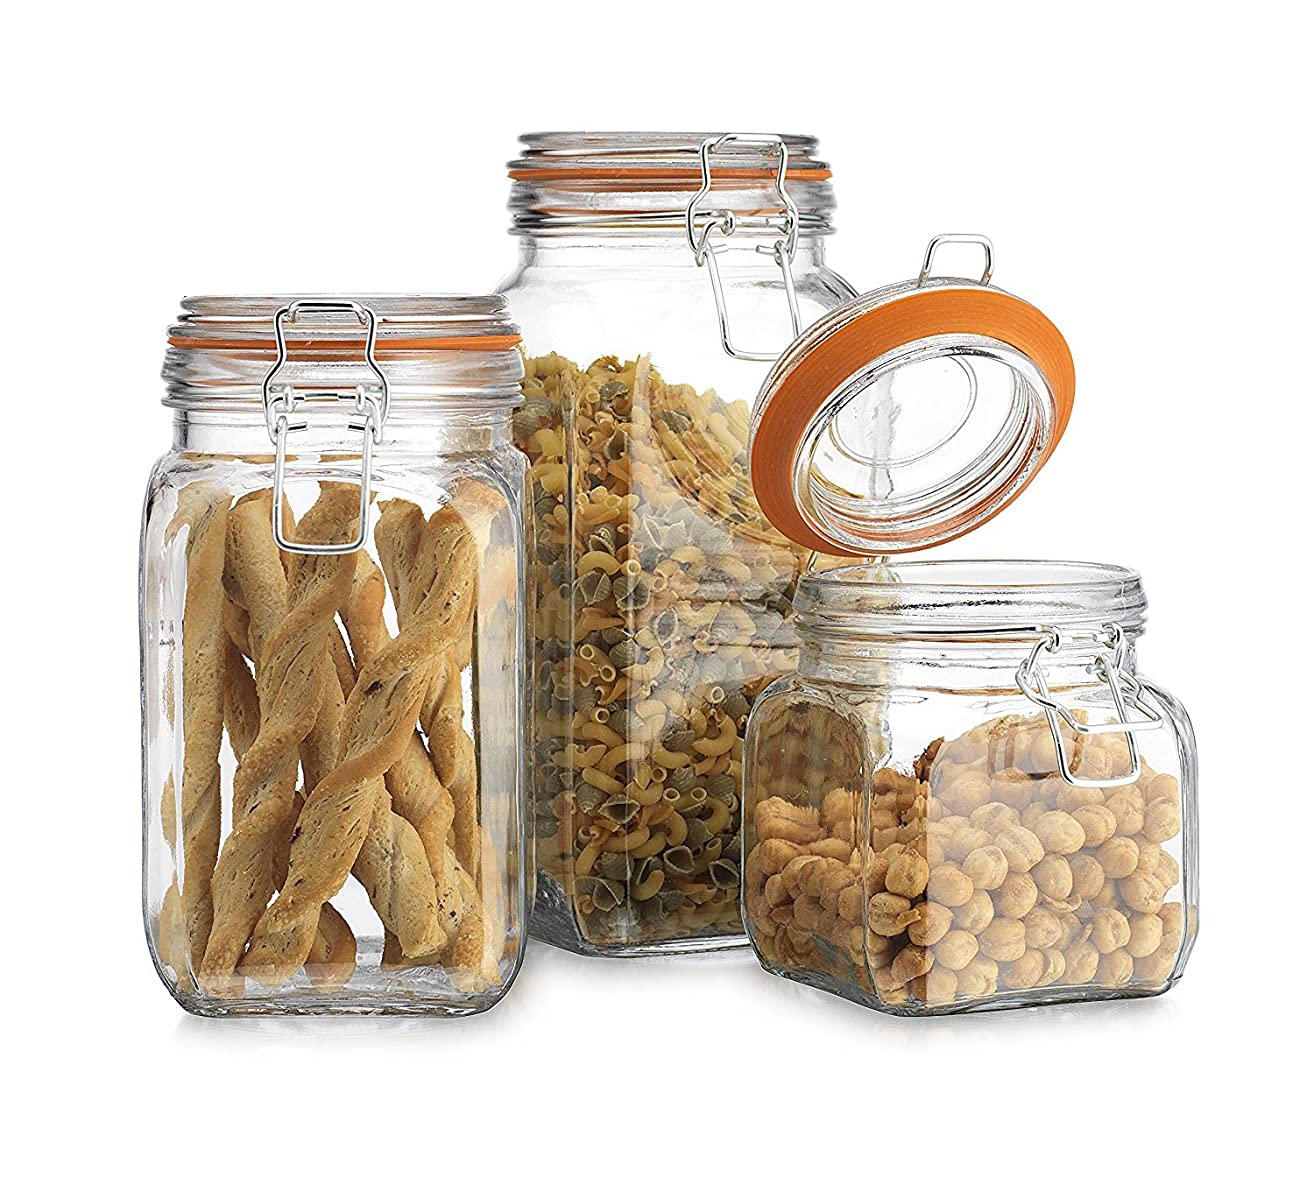 Airtight Glass Canister Hermetic Seal Bail & Trigger/Jar with Lidx2022; Use As Tea - Coffee - Sugar Canisterx2022; Wide Mouth/Square Shape/Set of 3